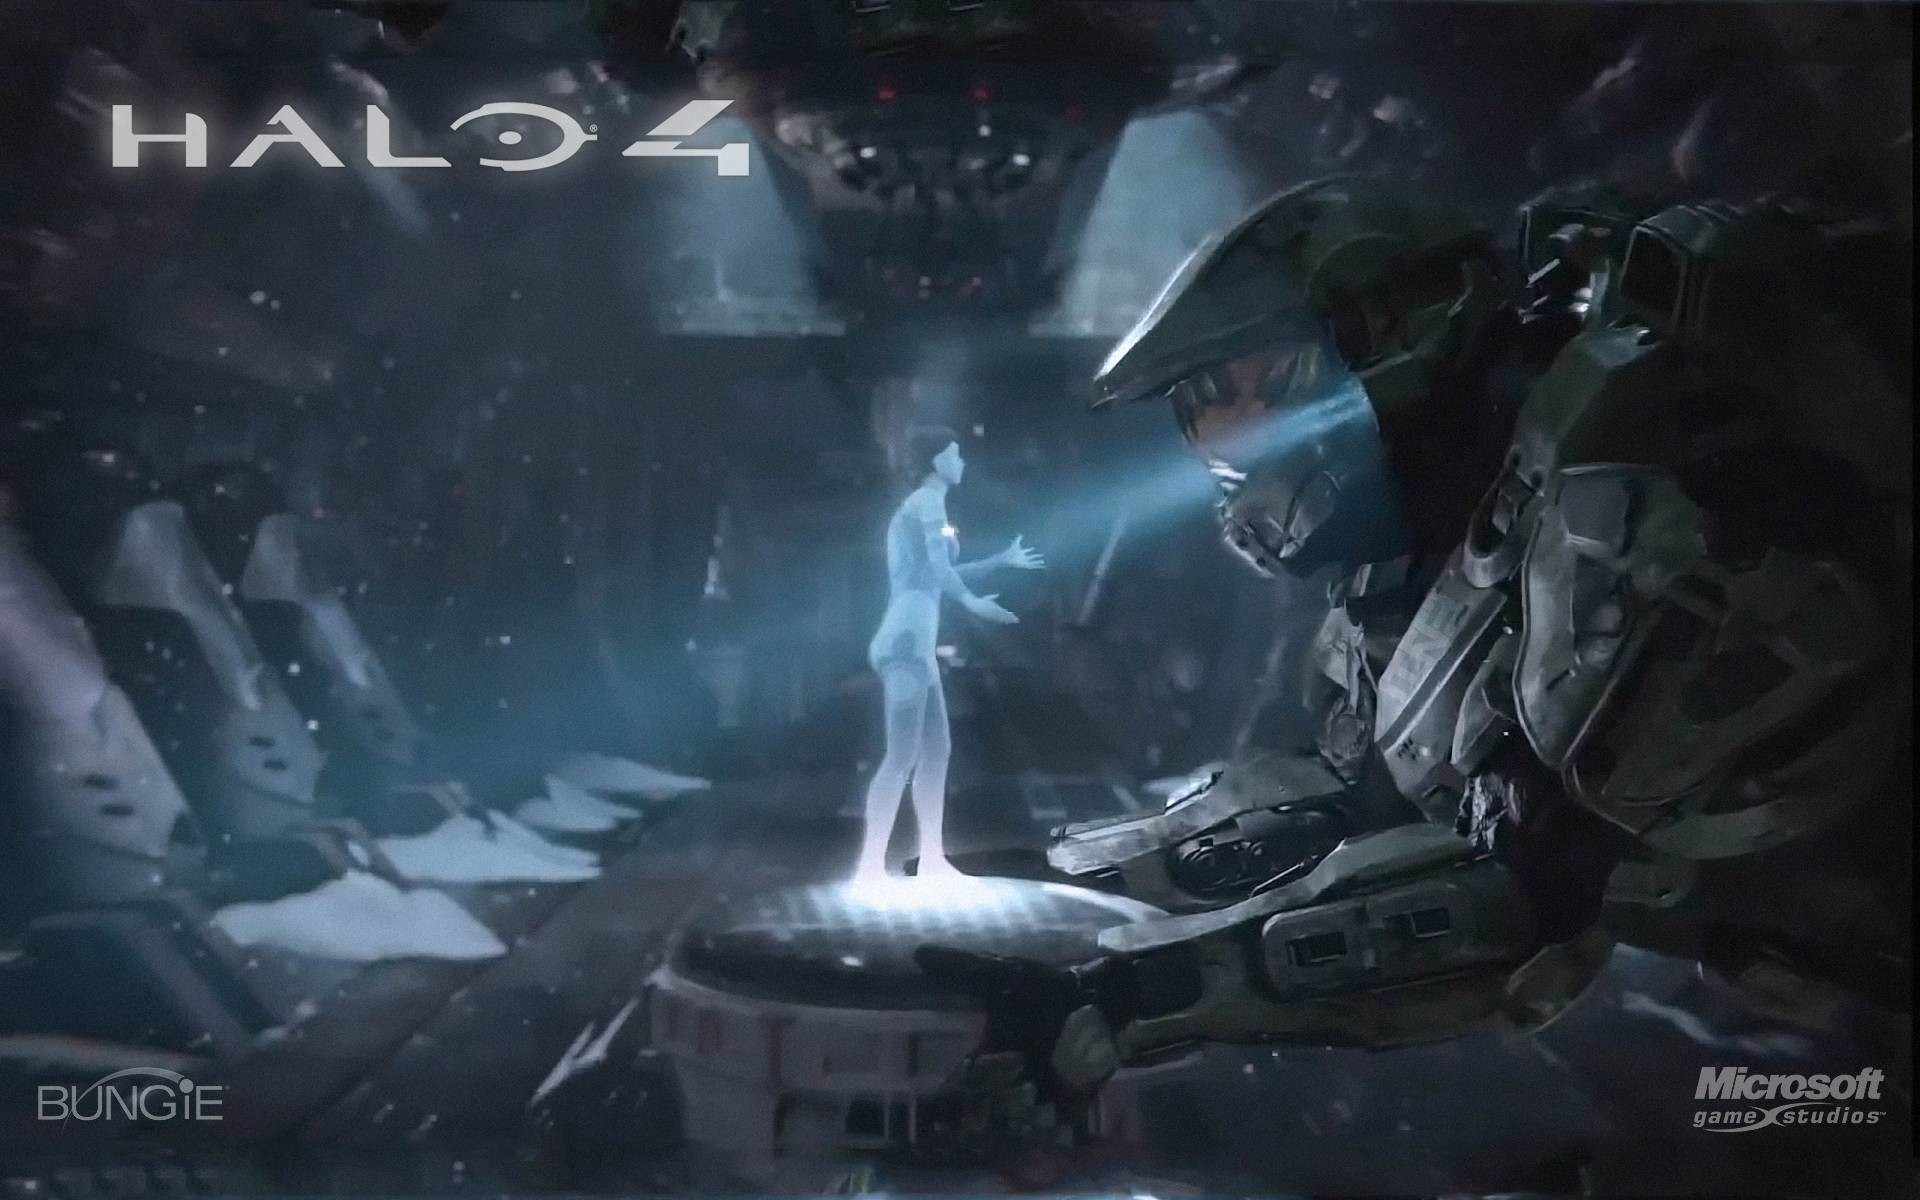 1920x1200 Halo 4 Wallpaper HD Exclusive by Ockre